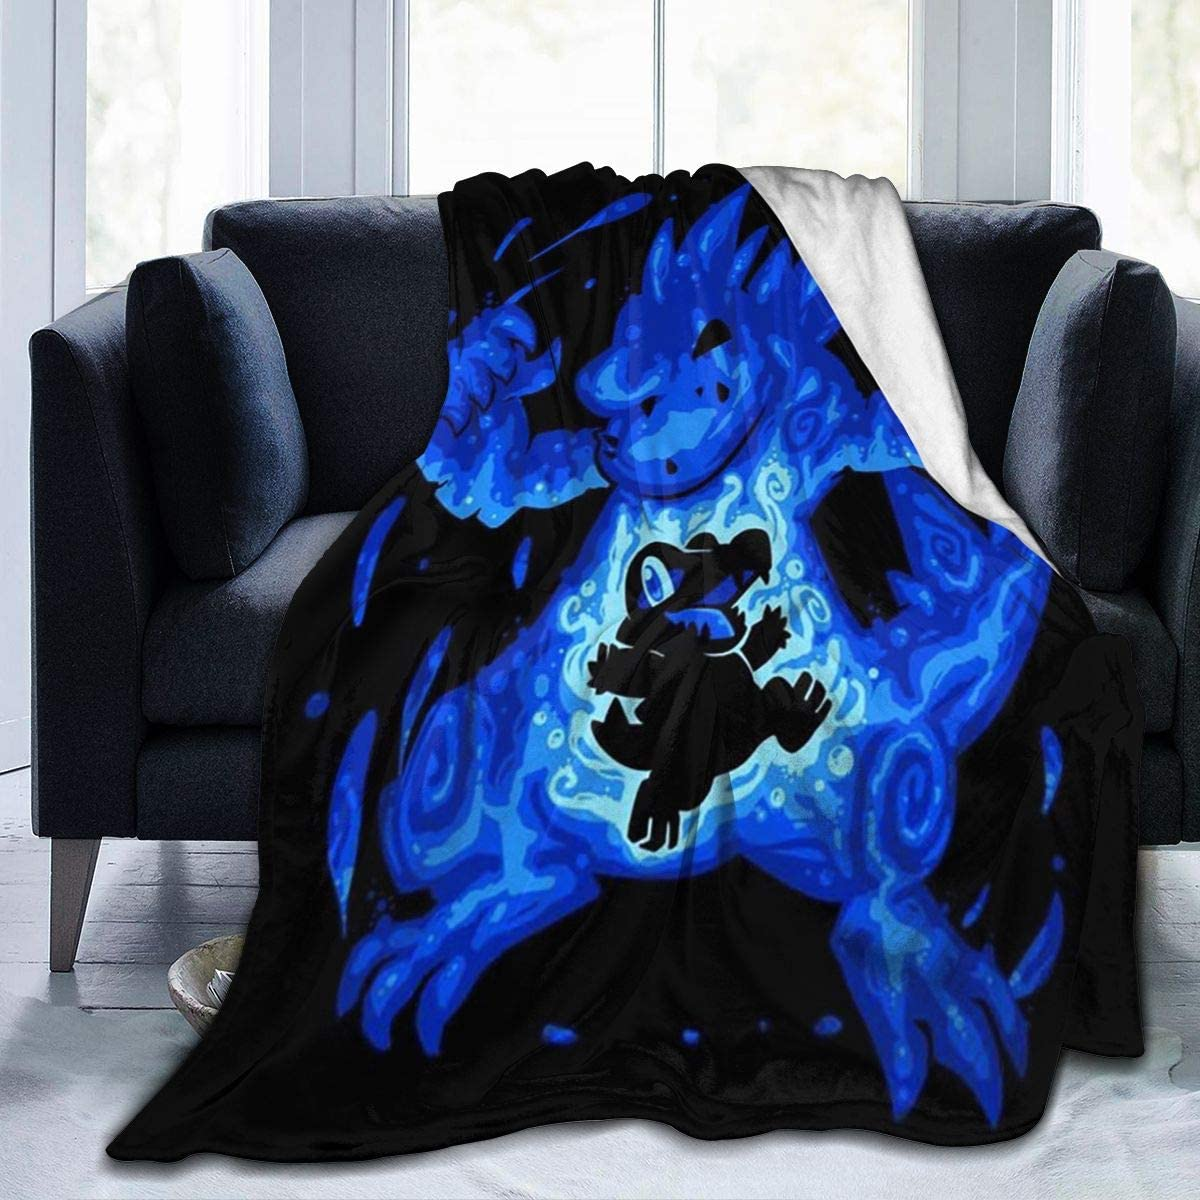 Poke-mon Ferocious Water Within Totodile Feraligatr Fleece Blanket Ultra-Soft Lightweight All Seasons Fit Bed Couch Chair Office Flight and Outdoors